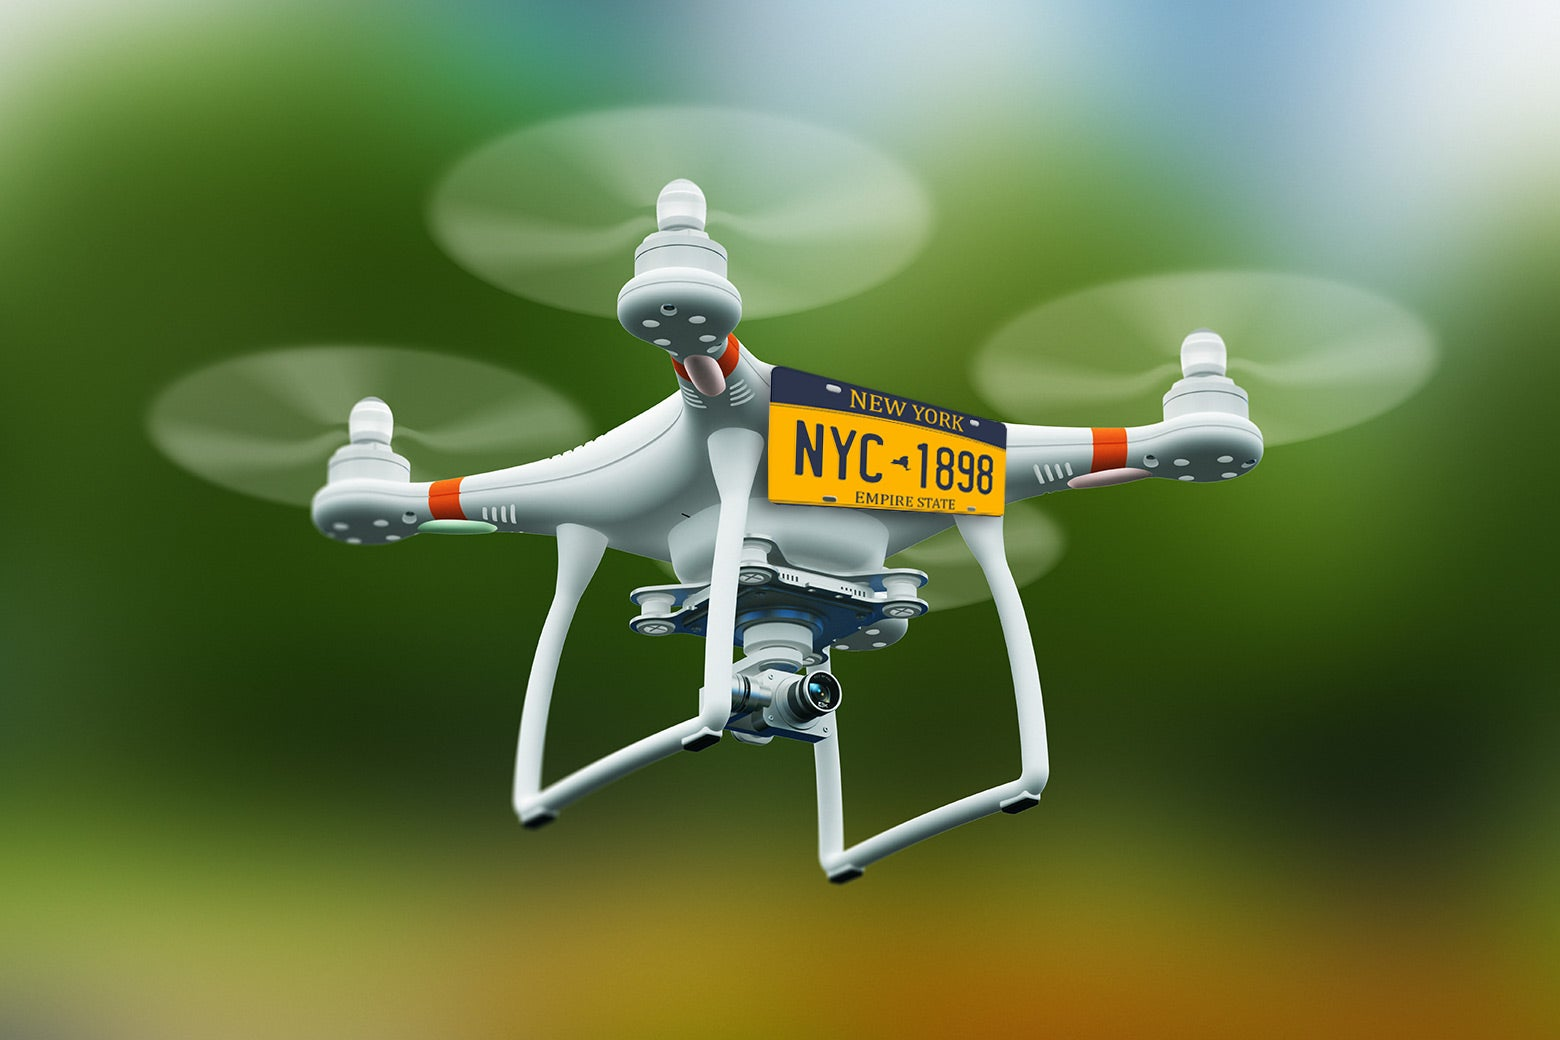 A drone with a New York state license plate.